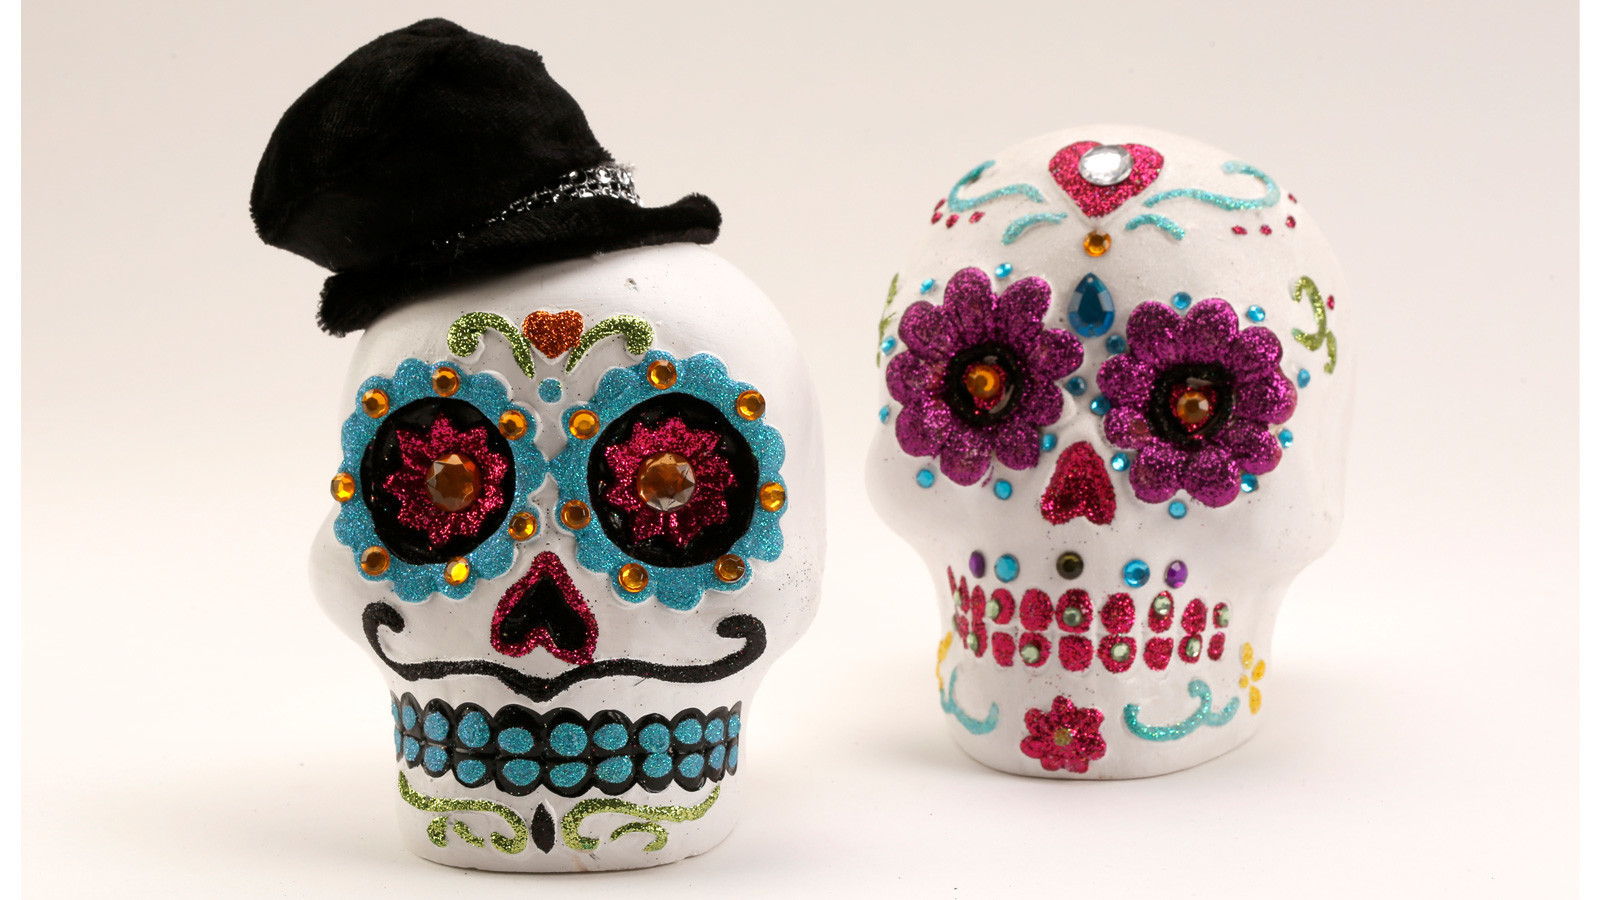 day of the dead décor now lives on shelves at major stores - la times